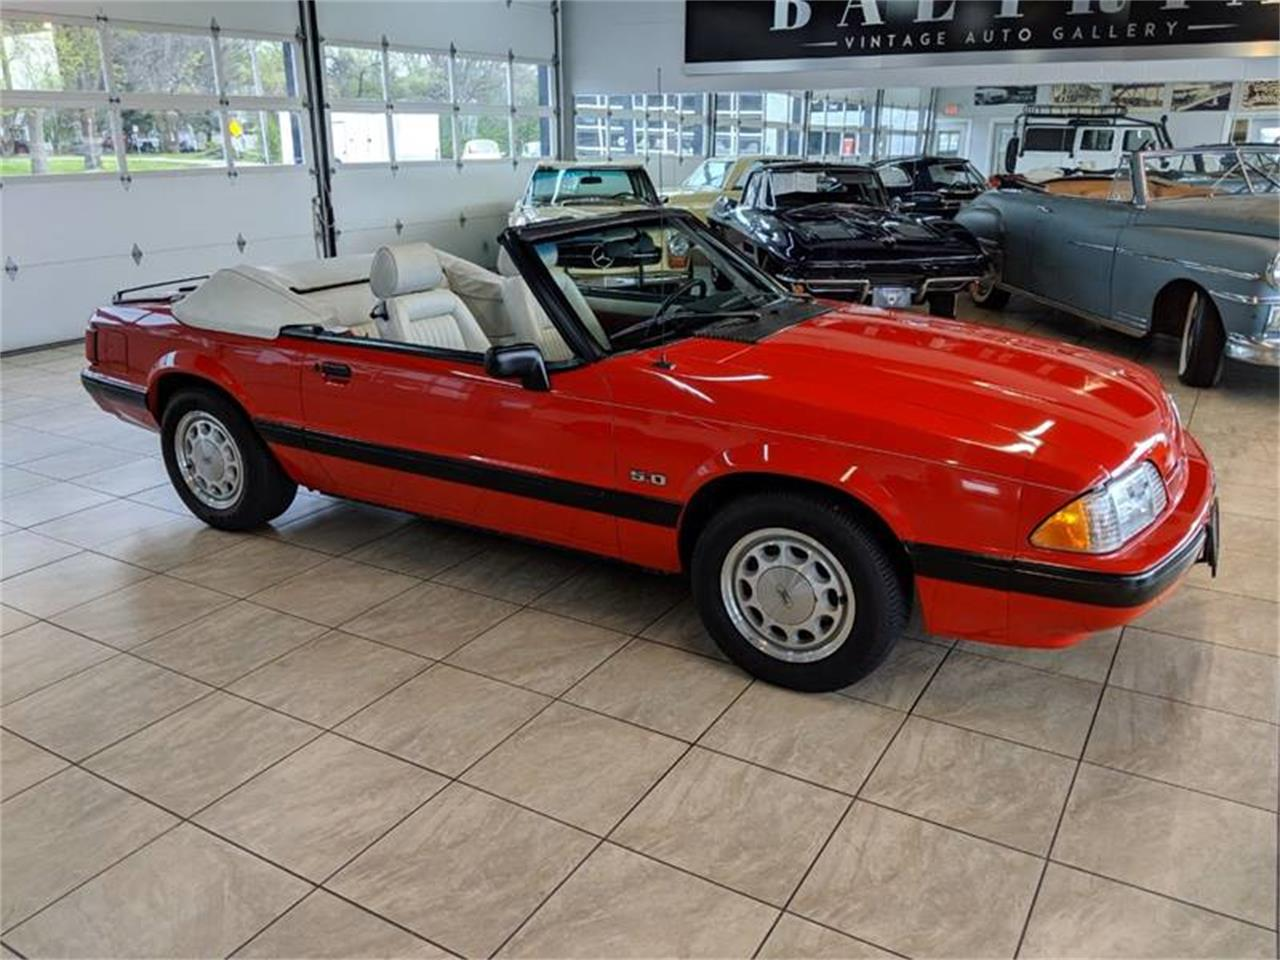 Large Picture of 1989 Ford Mustang located in Illinois - $17,900.00 - Q2R9